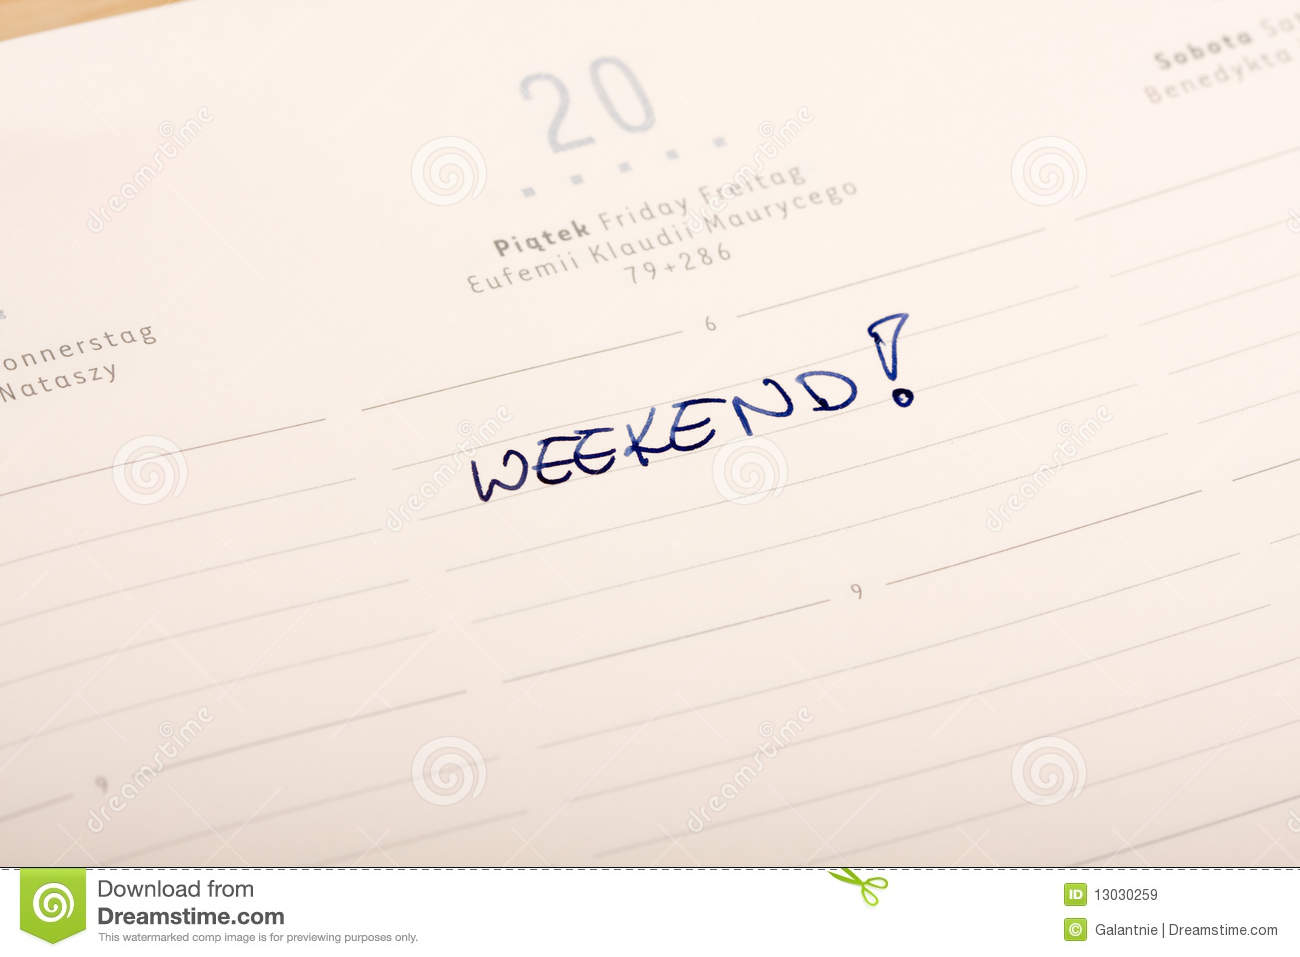 Weekend Royalty Free Stock Images - Image: 13030259